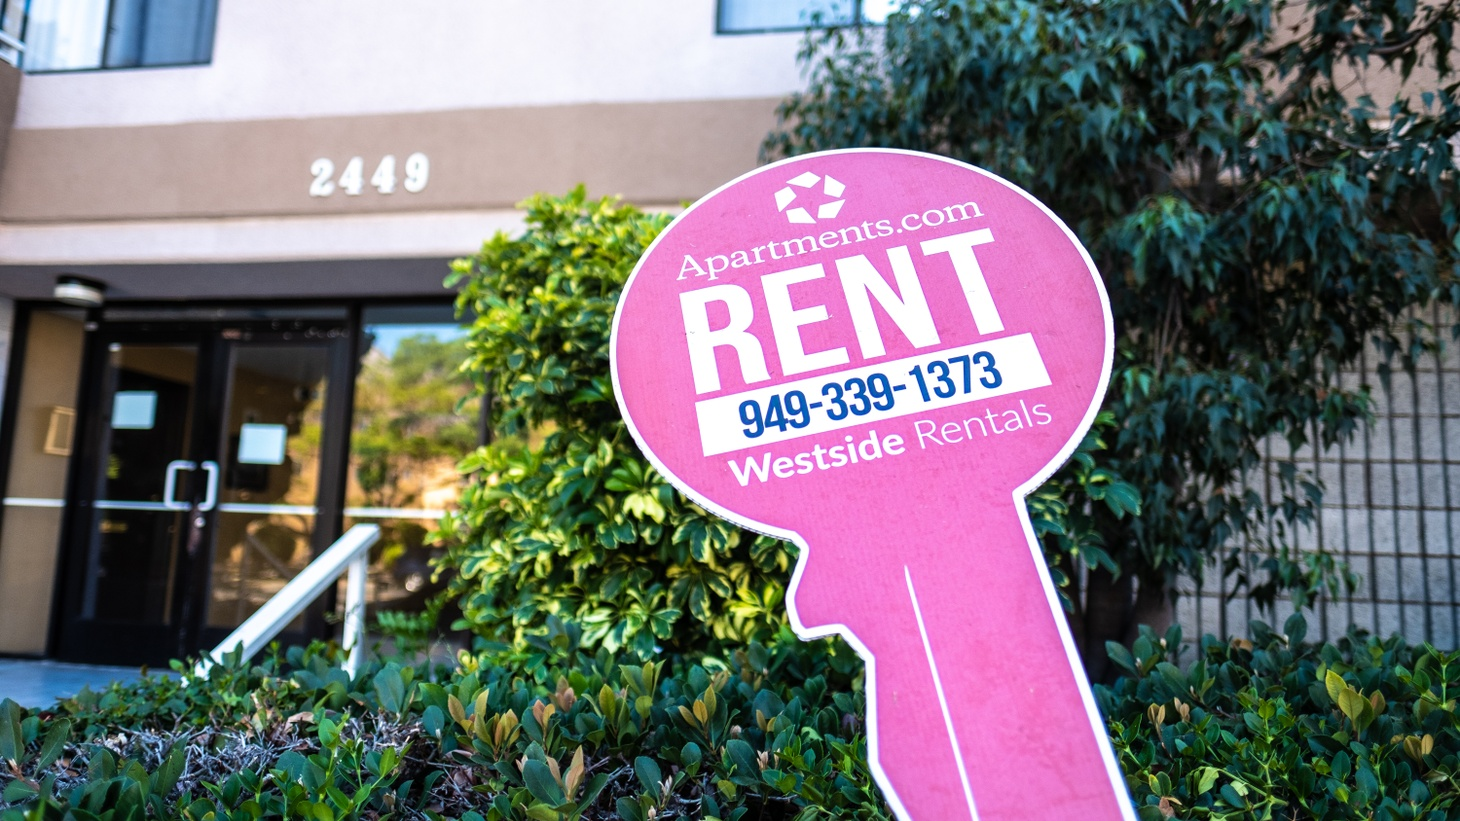 Apartments.com rent sign in Santa Monica.